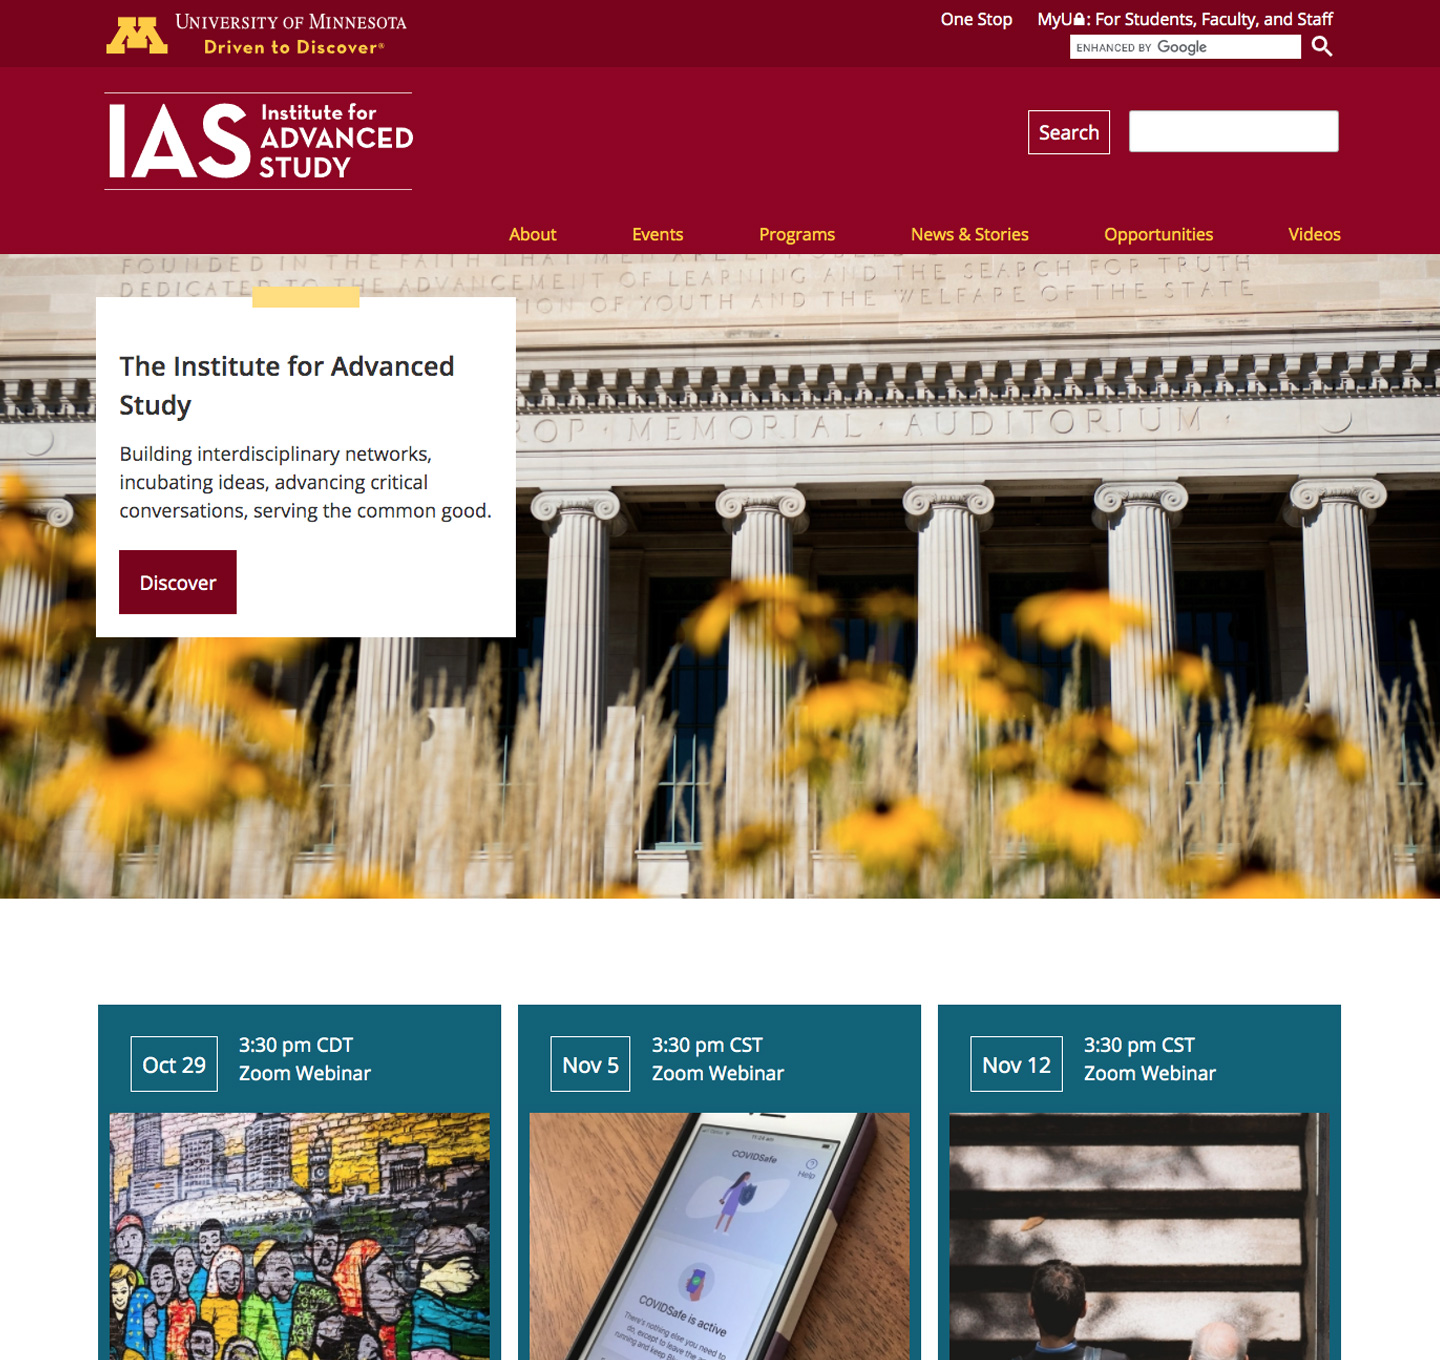 The Institute for Advanced Study website screenshot